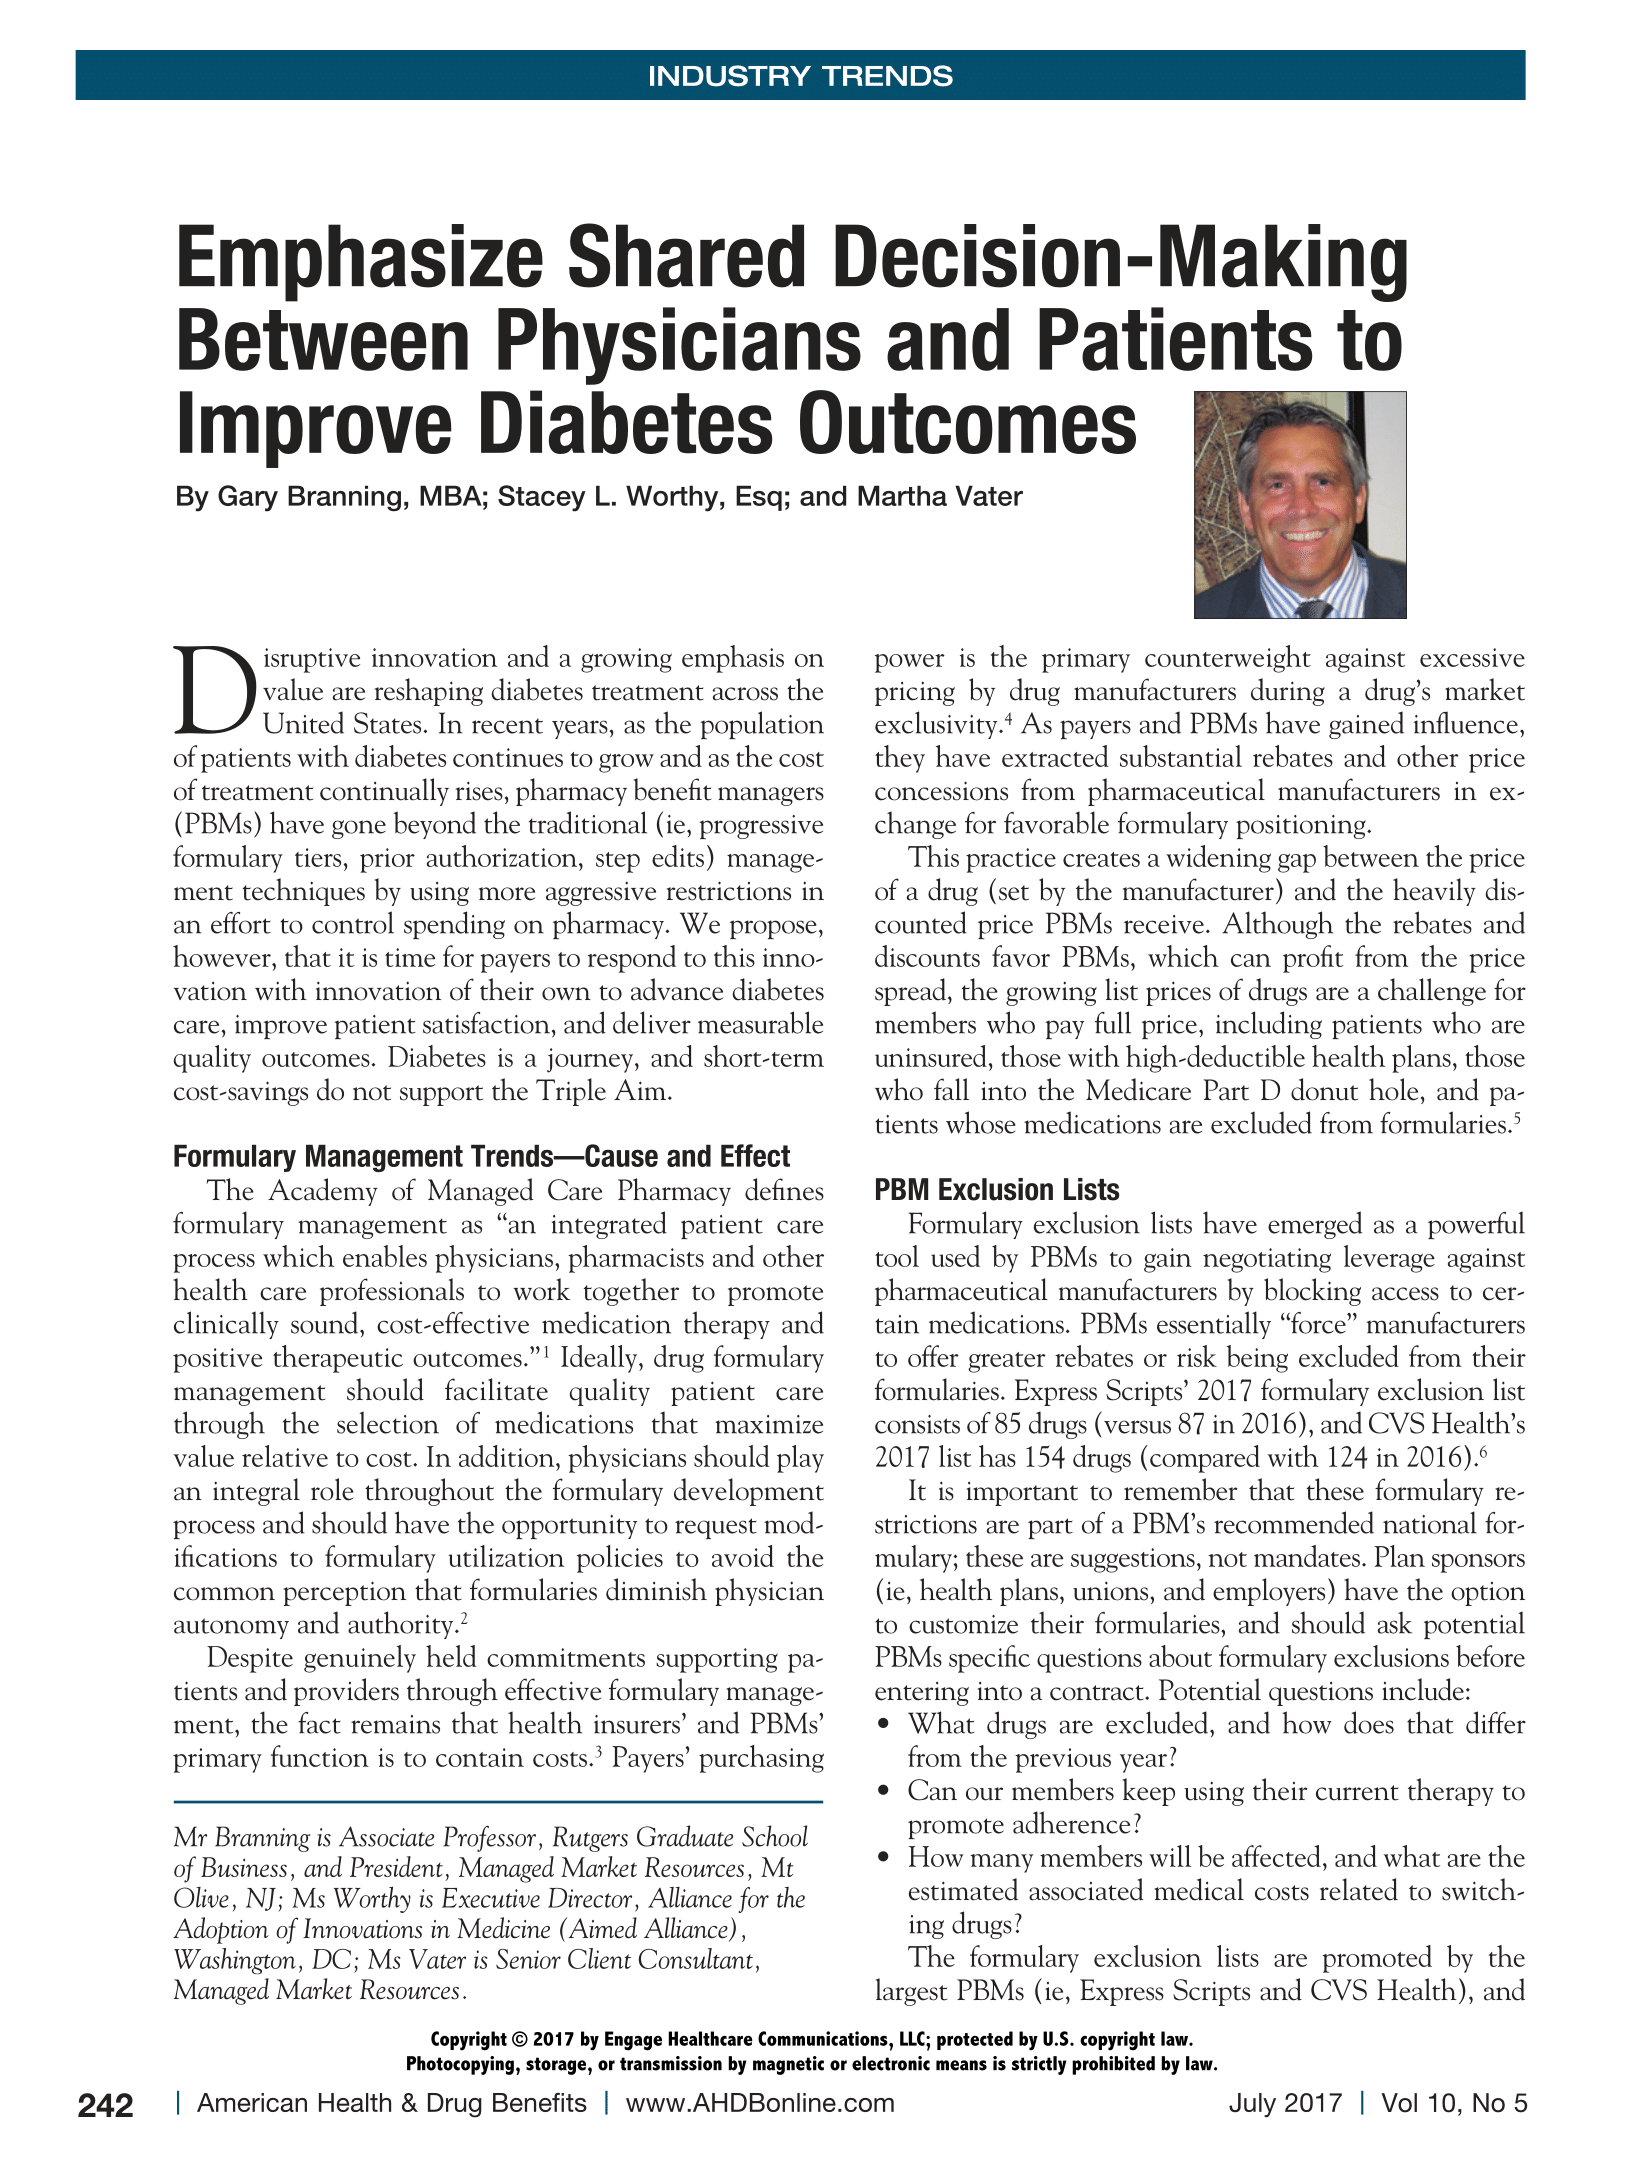 Emphasize Shared Decision-Making Between Physicians and Patients to Improve Diabetes Outcomes